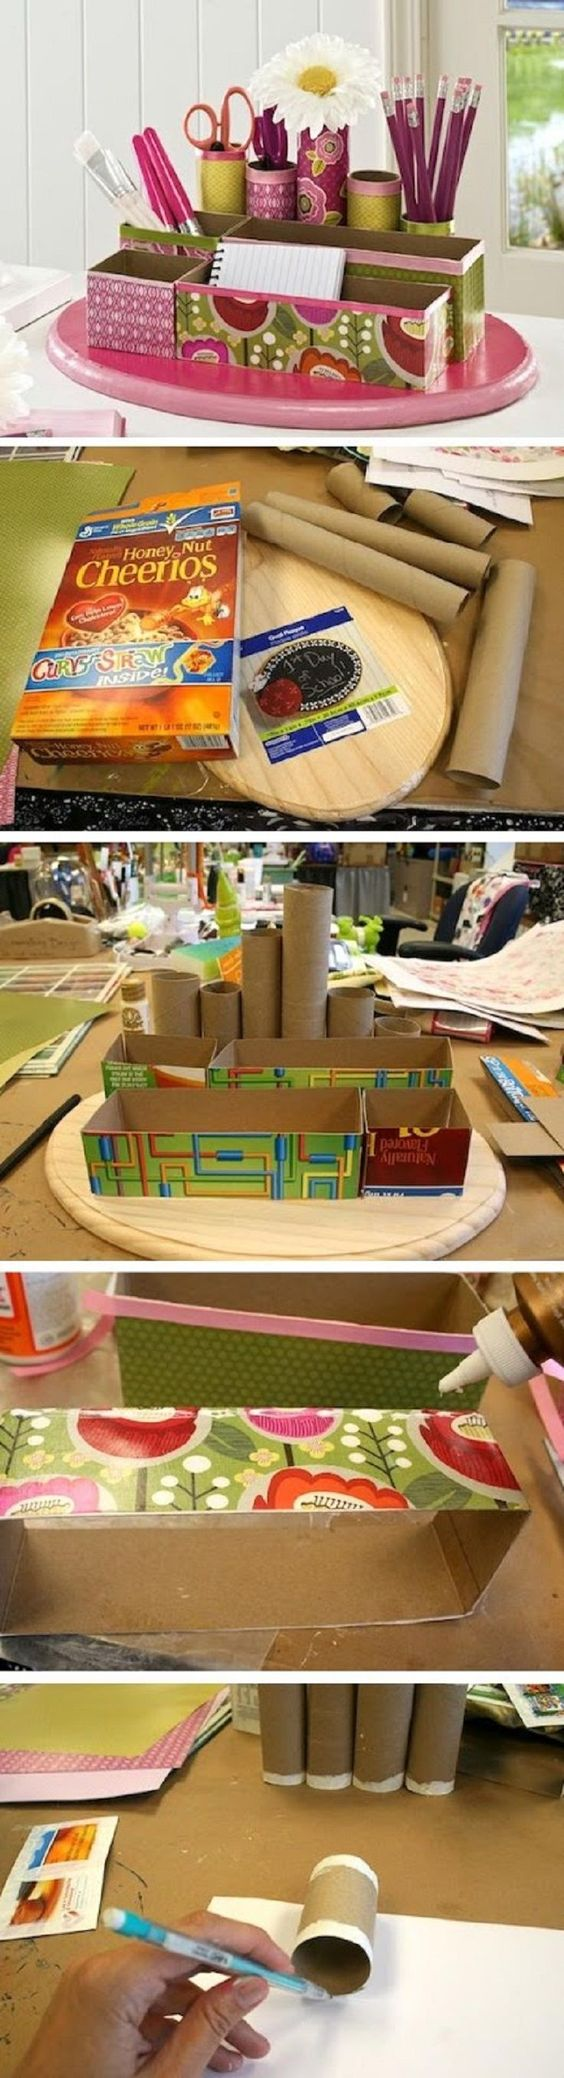 Diy & Home | Creative Projects For Your Home | Most Pinned Great Diy Recycle Ideas on Pinterest 3: